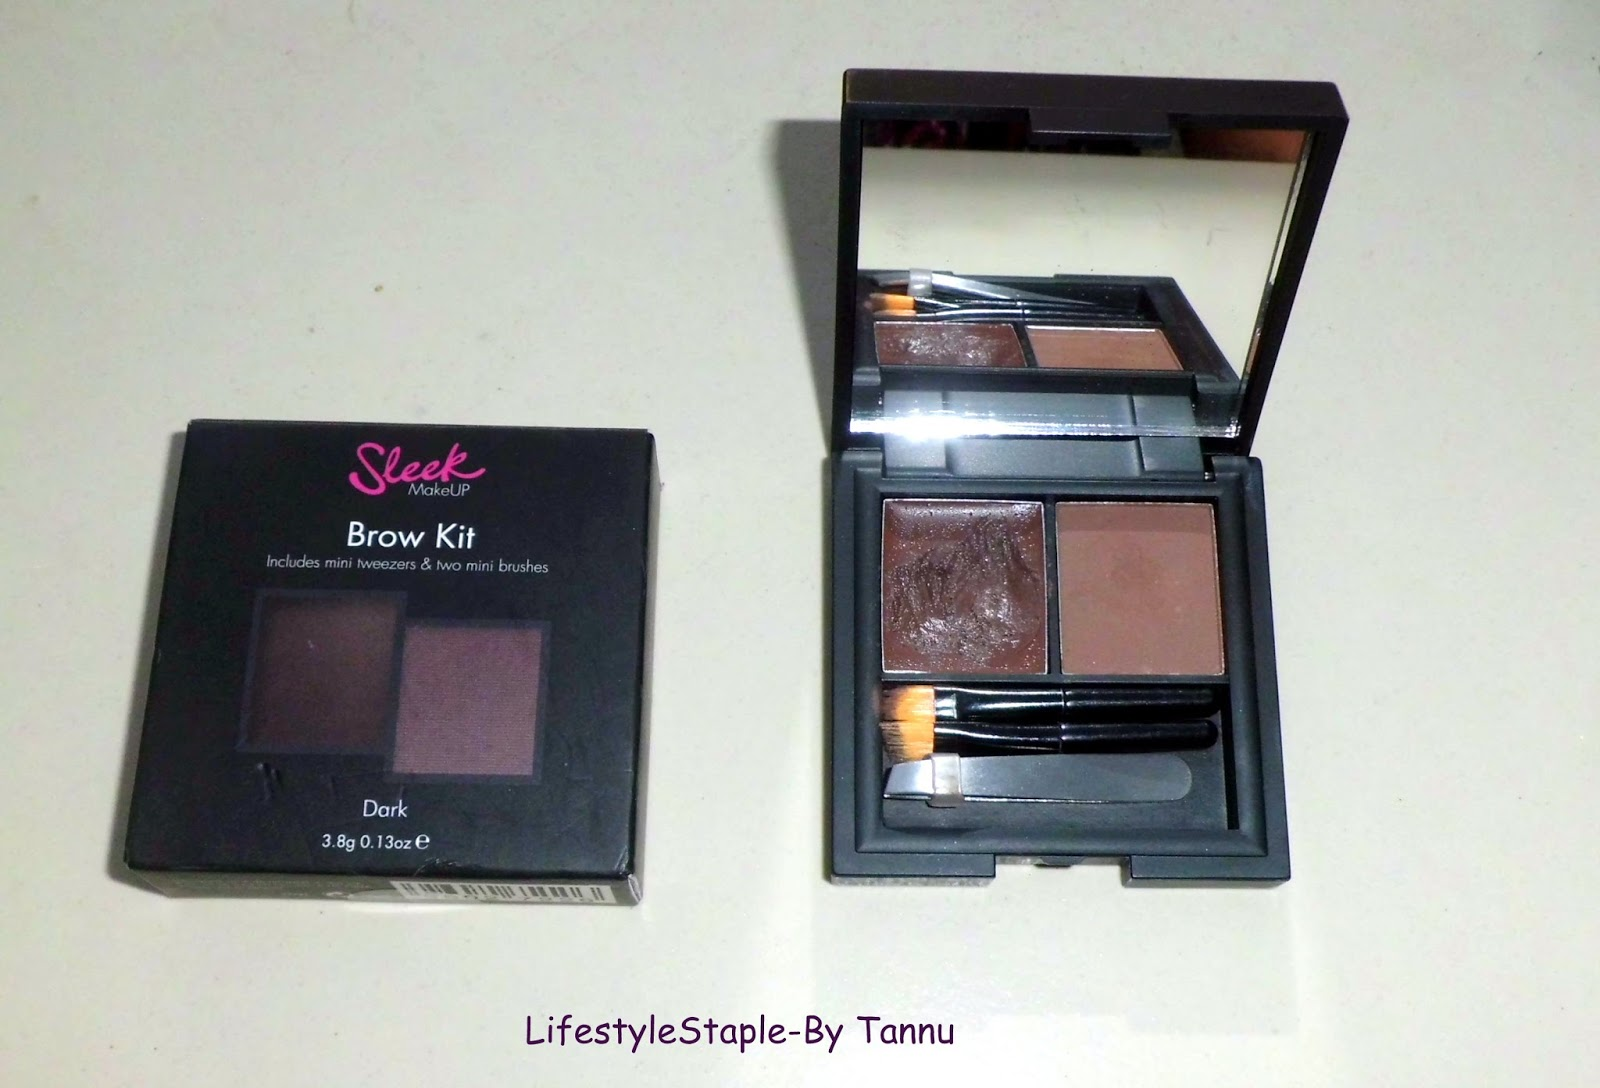 Sleek Makeup Brow Kit 'Dark' Review – Lifestyle Staple